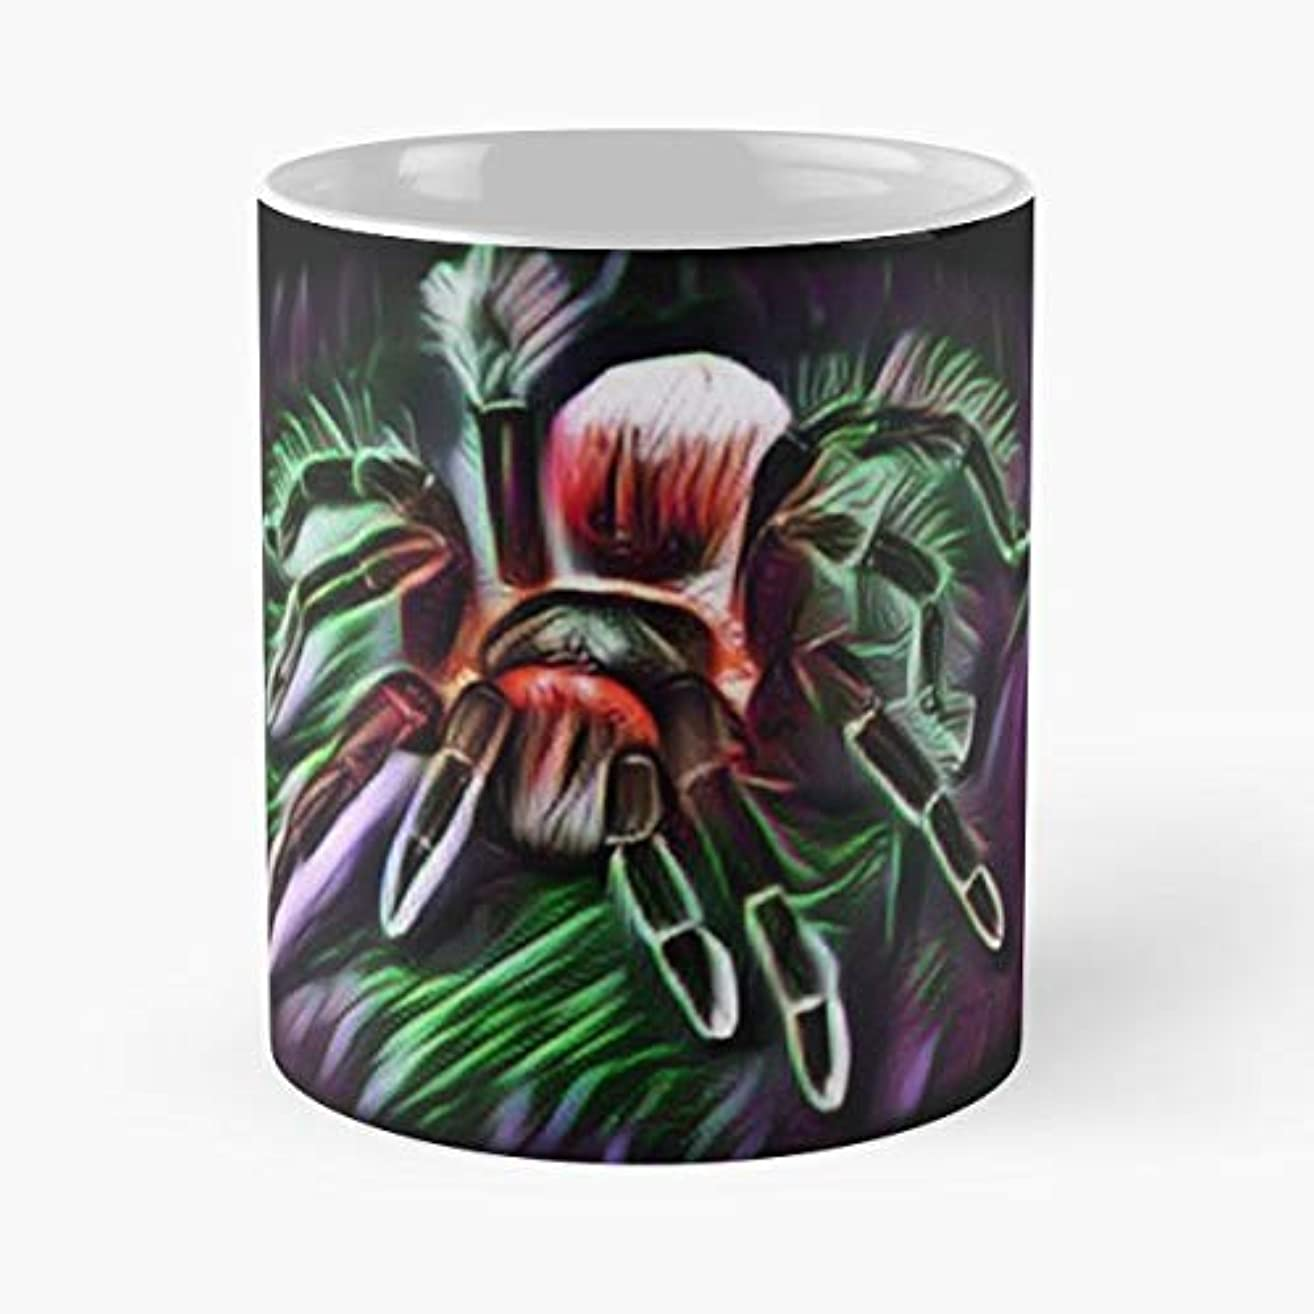 Spider Tarantula Vogelspinne Web - 11 Oz Coffee Mugs Unique Ceramic Novelty Cup, The Best Gift For Halloween.